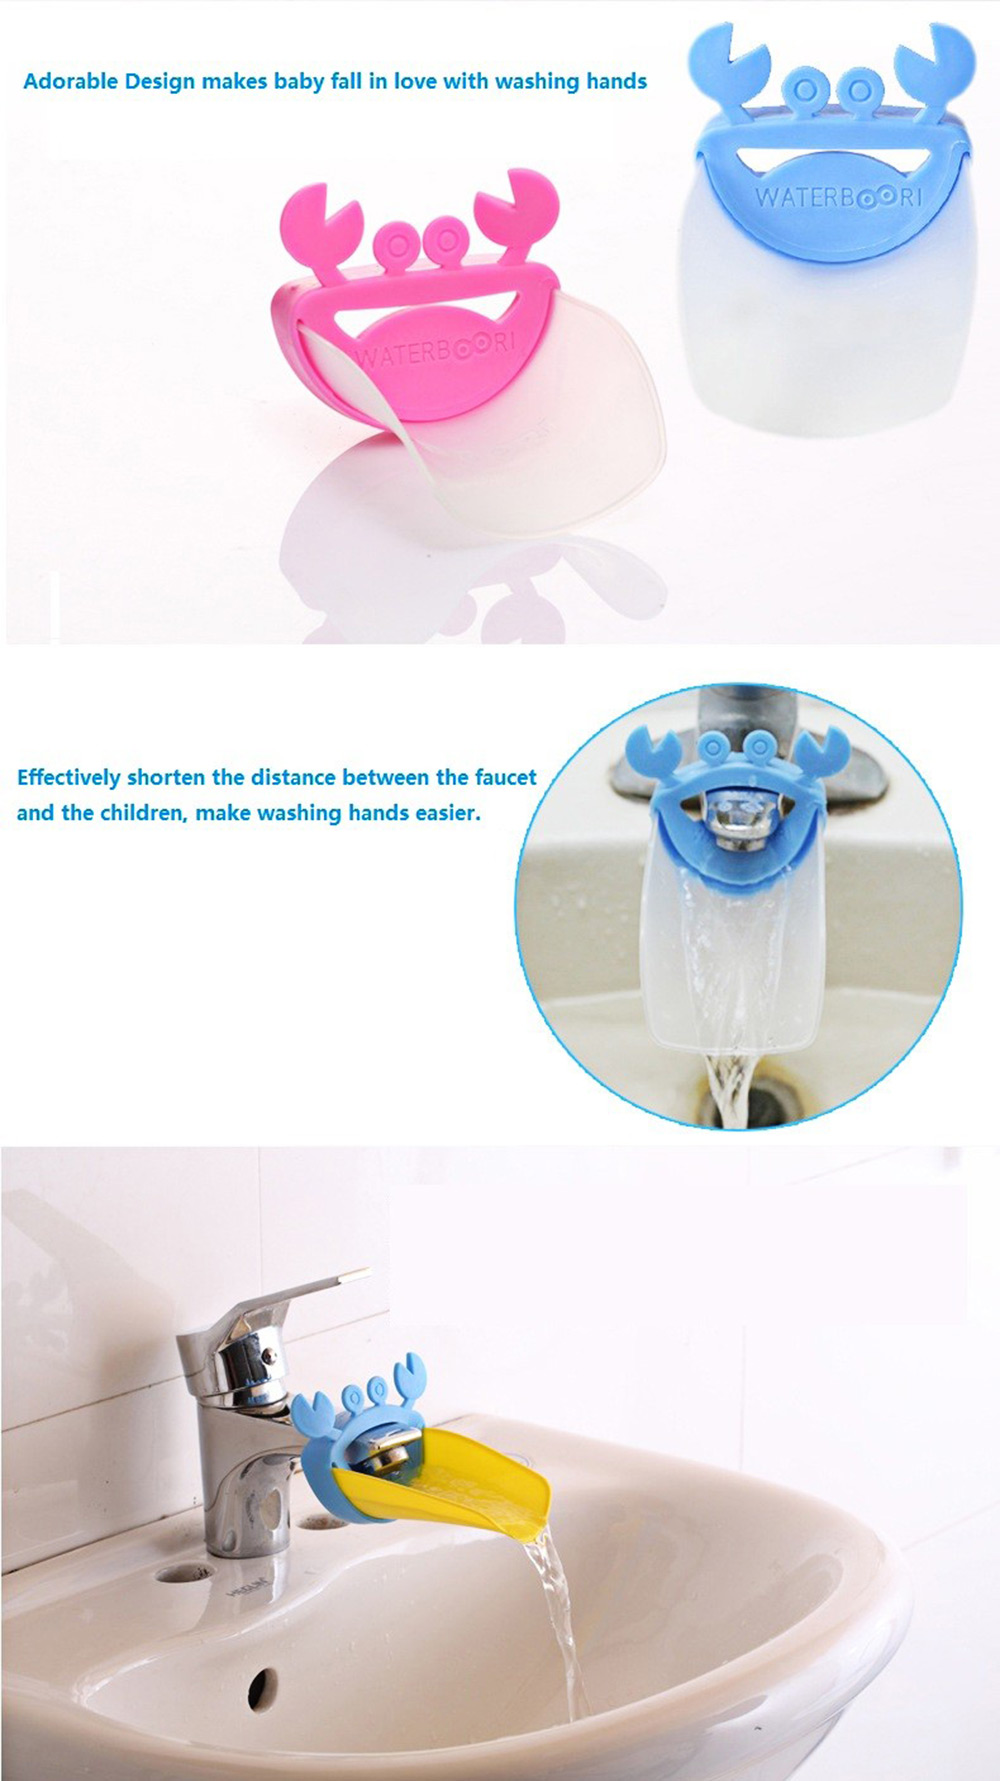 Cute Crab Design Bathroom Sink Faucet Chute Extender for Children Hands Washing